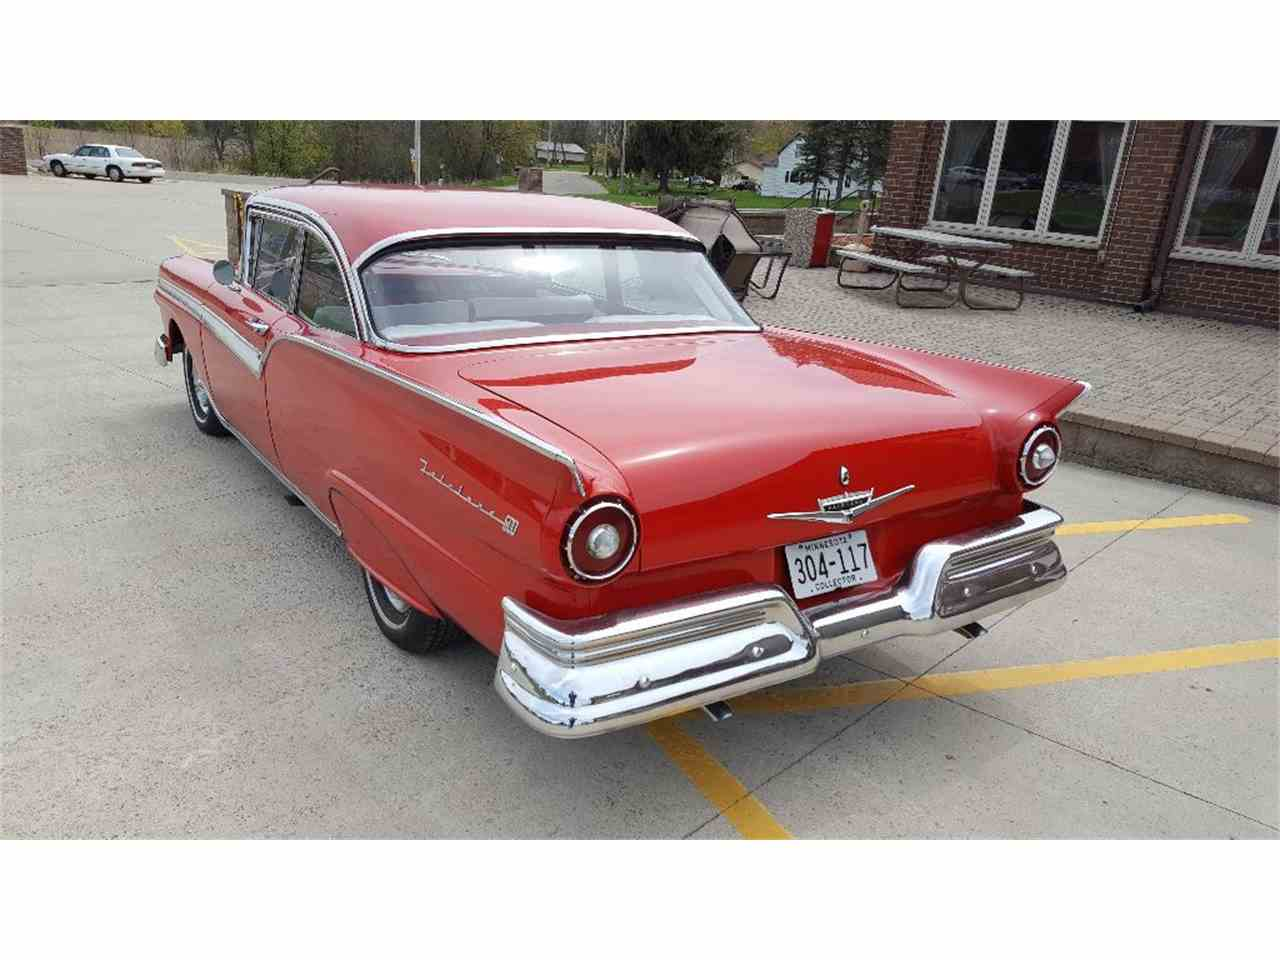 Large Picture of '57 Fairlane Auction Vehicle Offered by Classic Rides and Rods - HP38